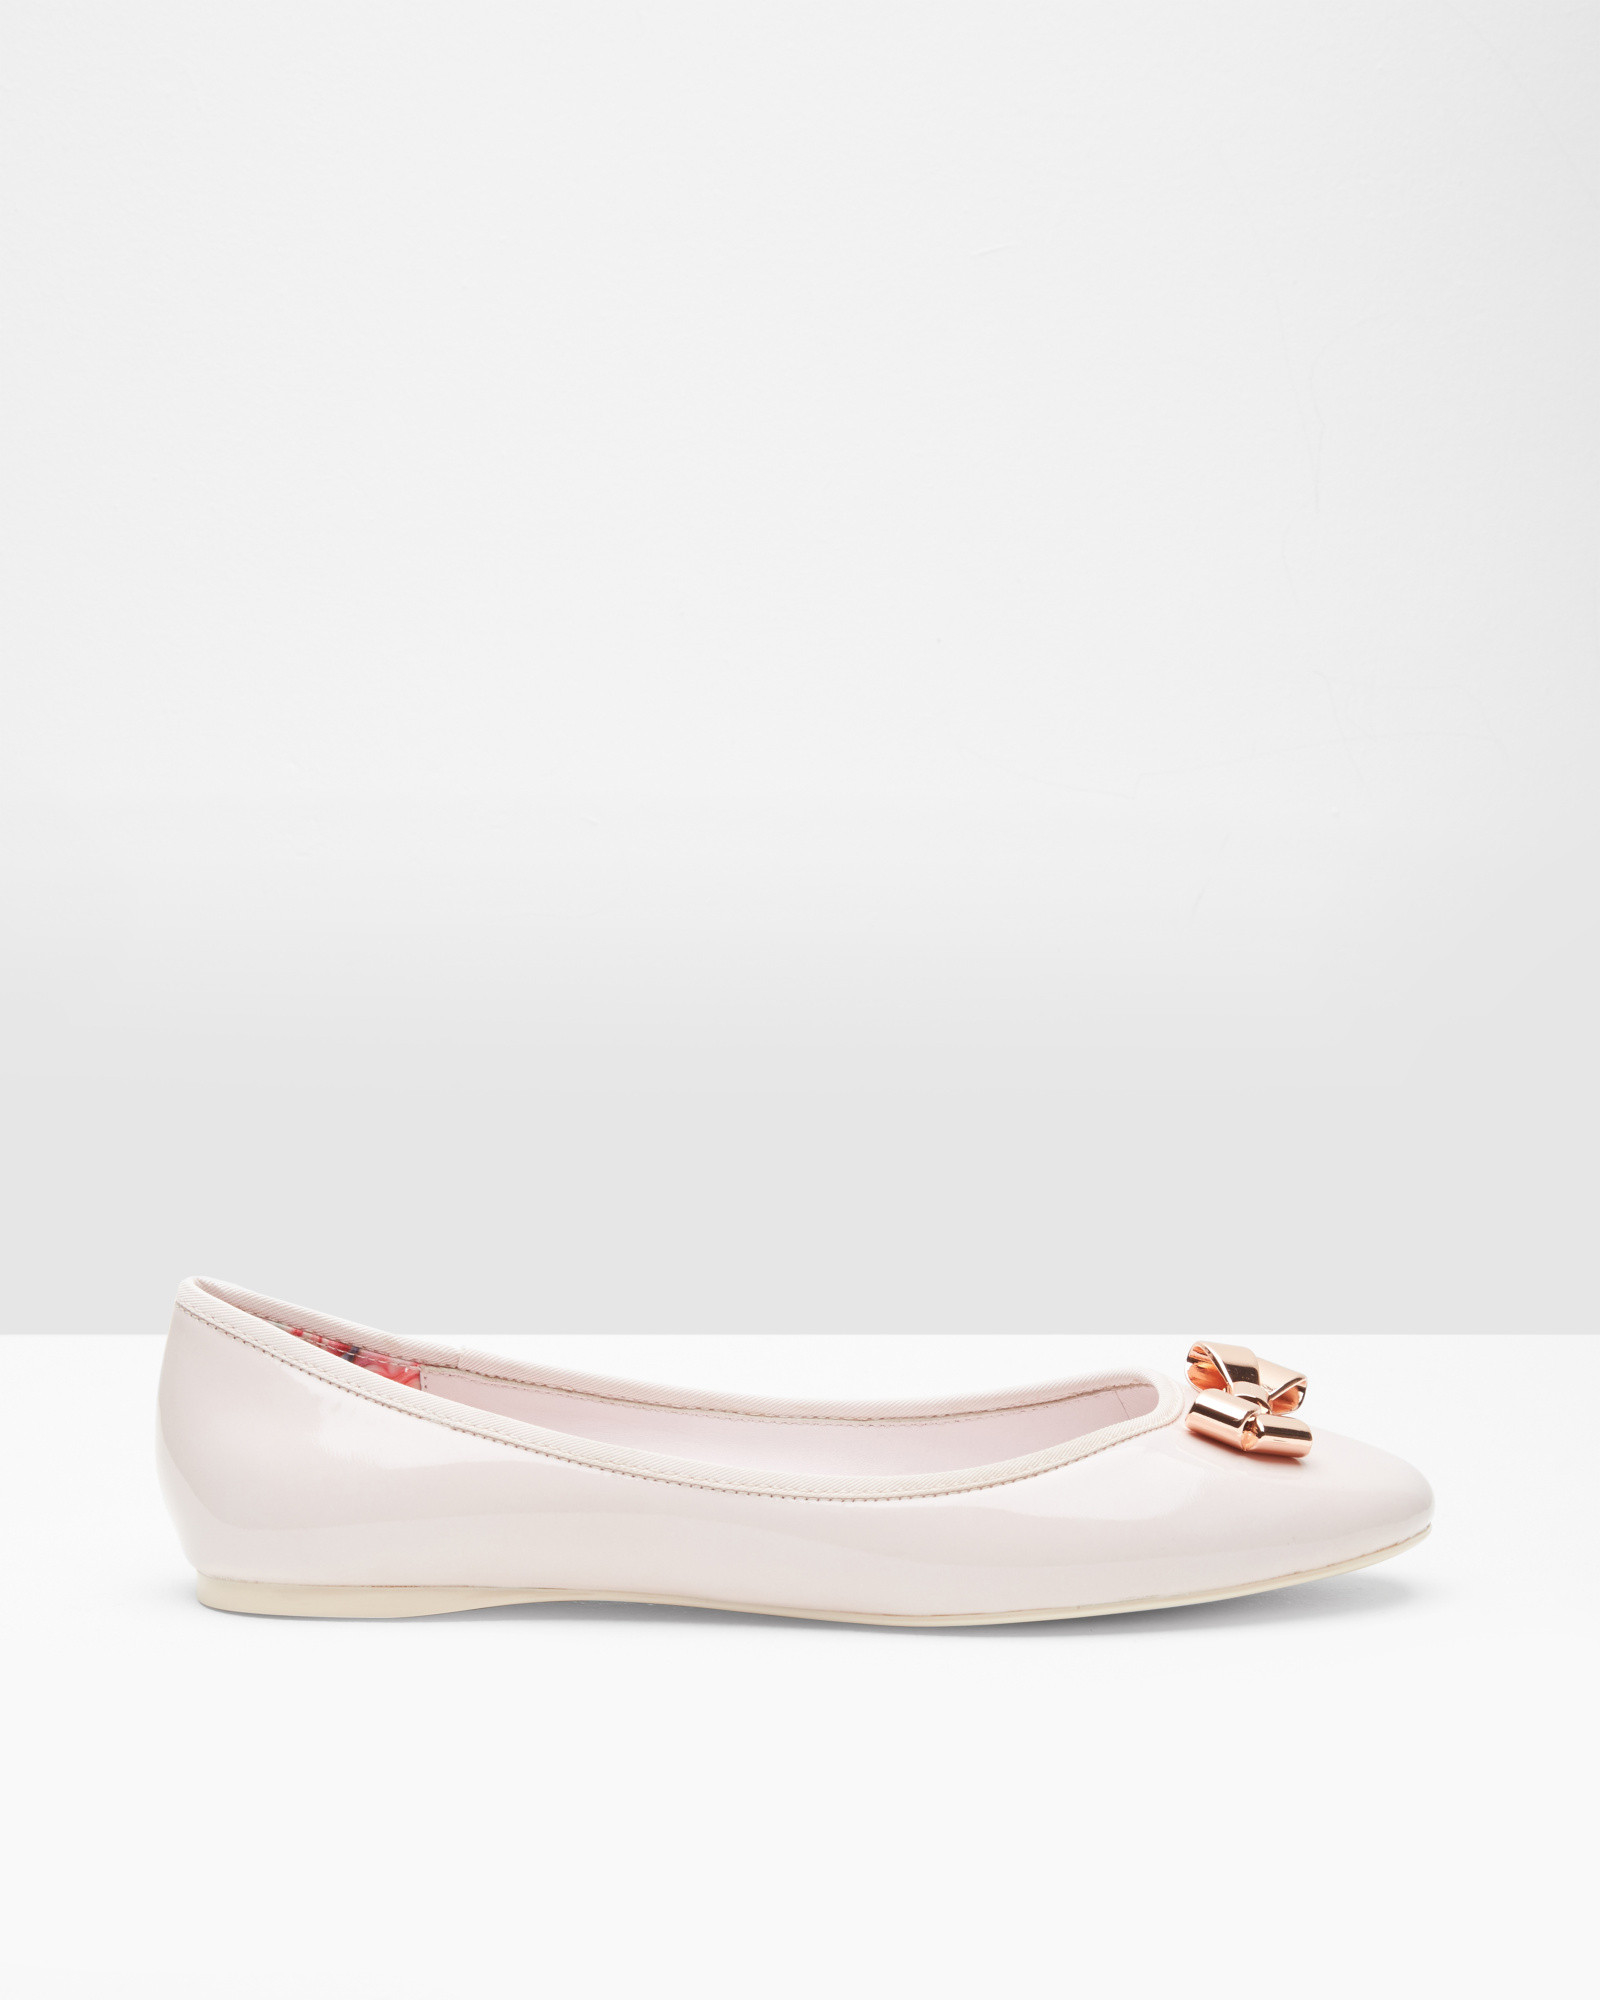 6ebe632d0b0943 Ted baker bow detail ballerina pumps in pink lyst jpg 1600x2000 Ted baker  baby shoes